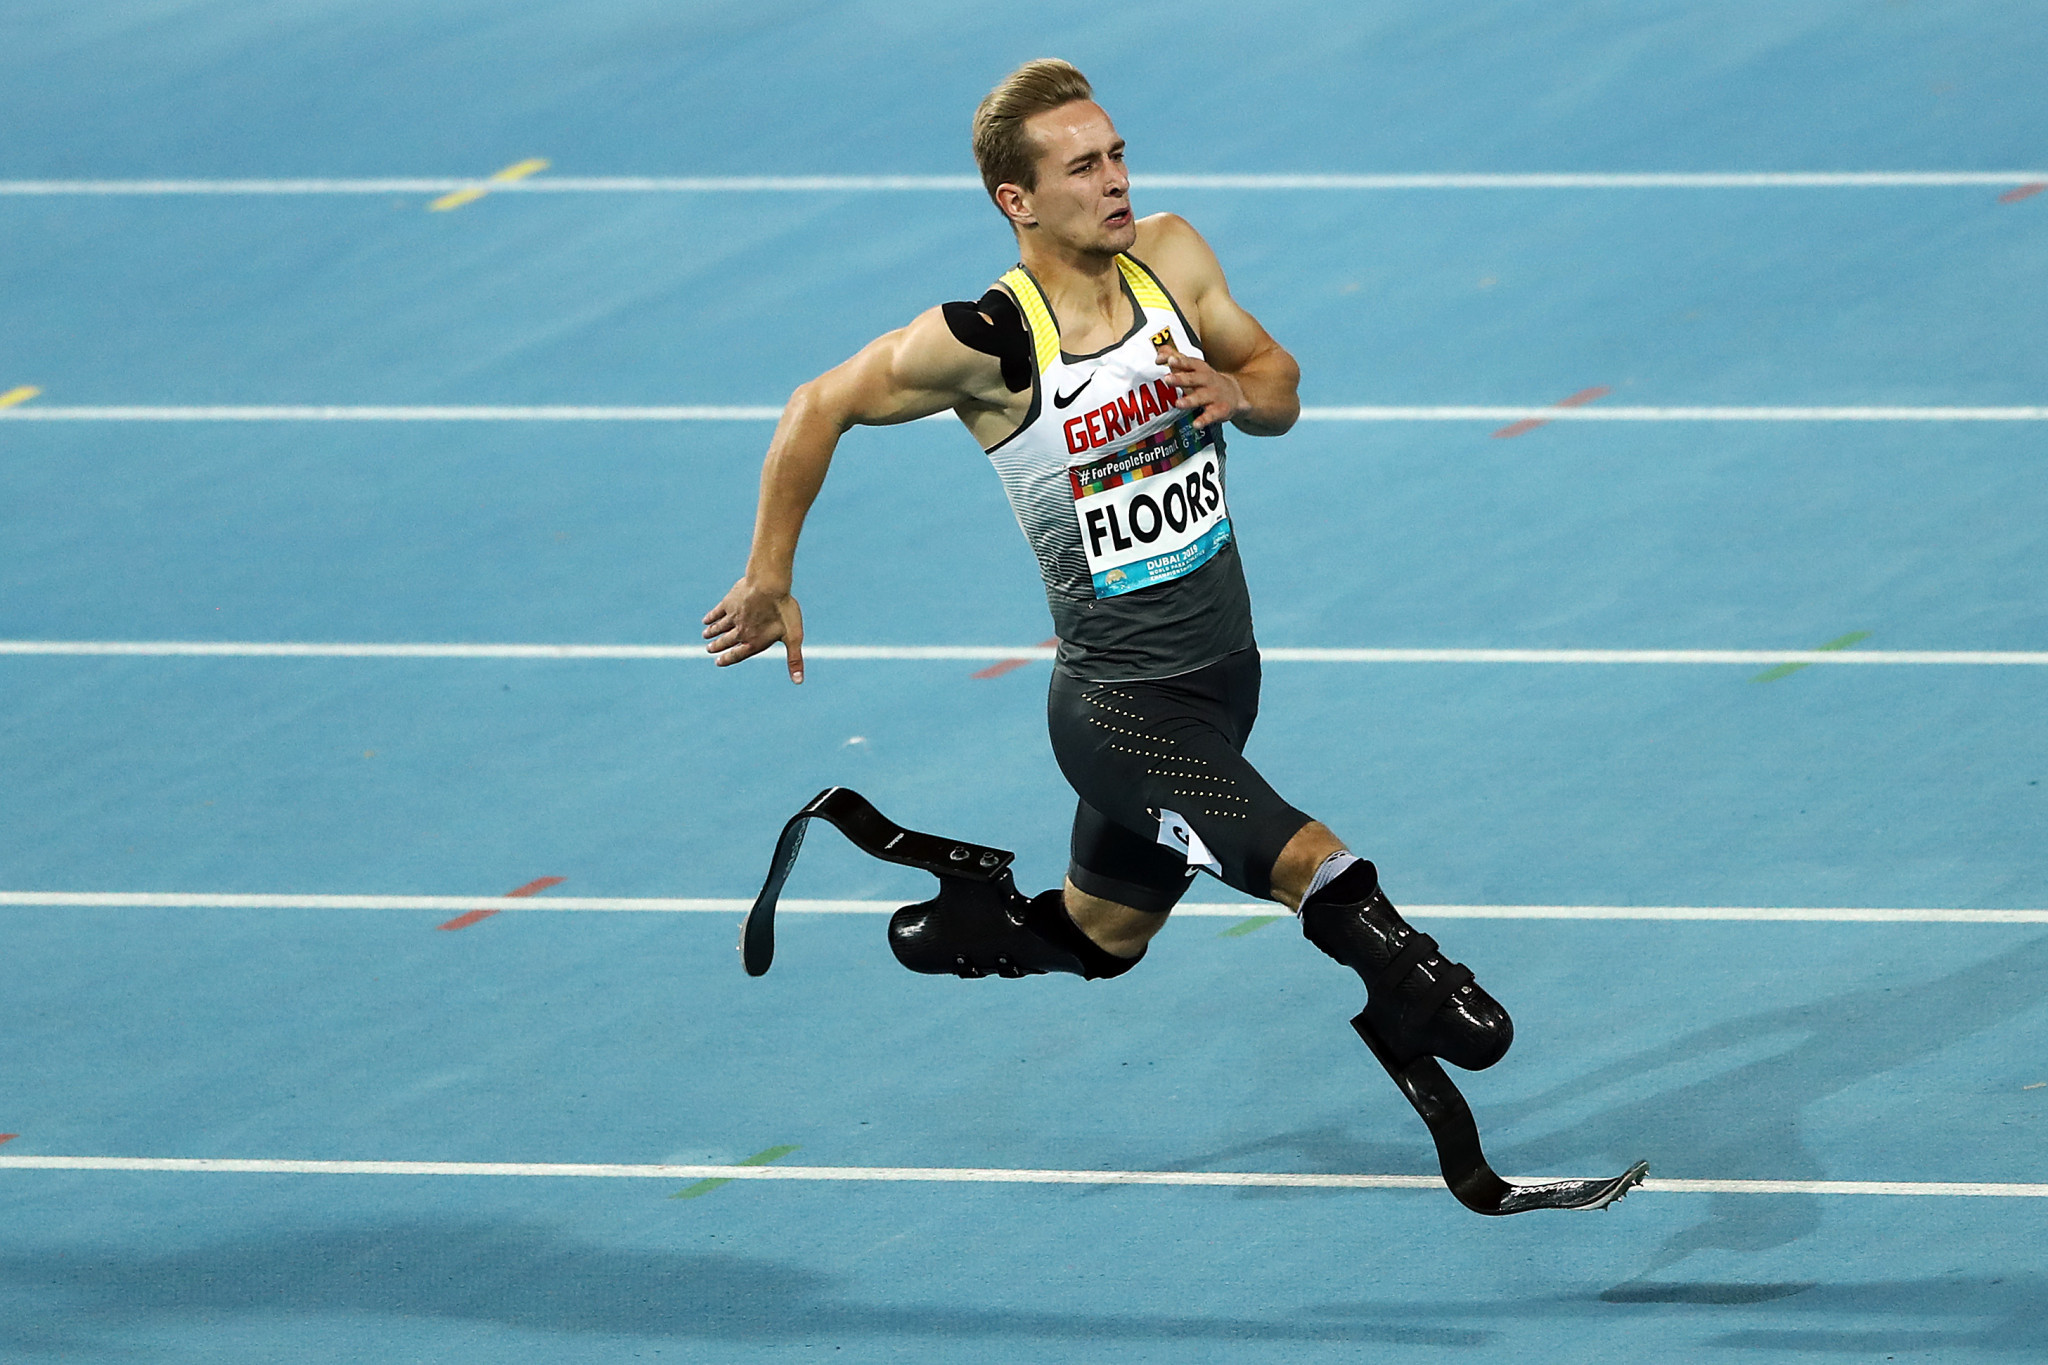 German Para-athlete Johannes Floors features as part of the DOSB and DBS My Way campaign ©Getty Images